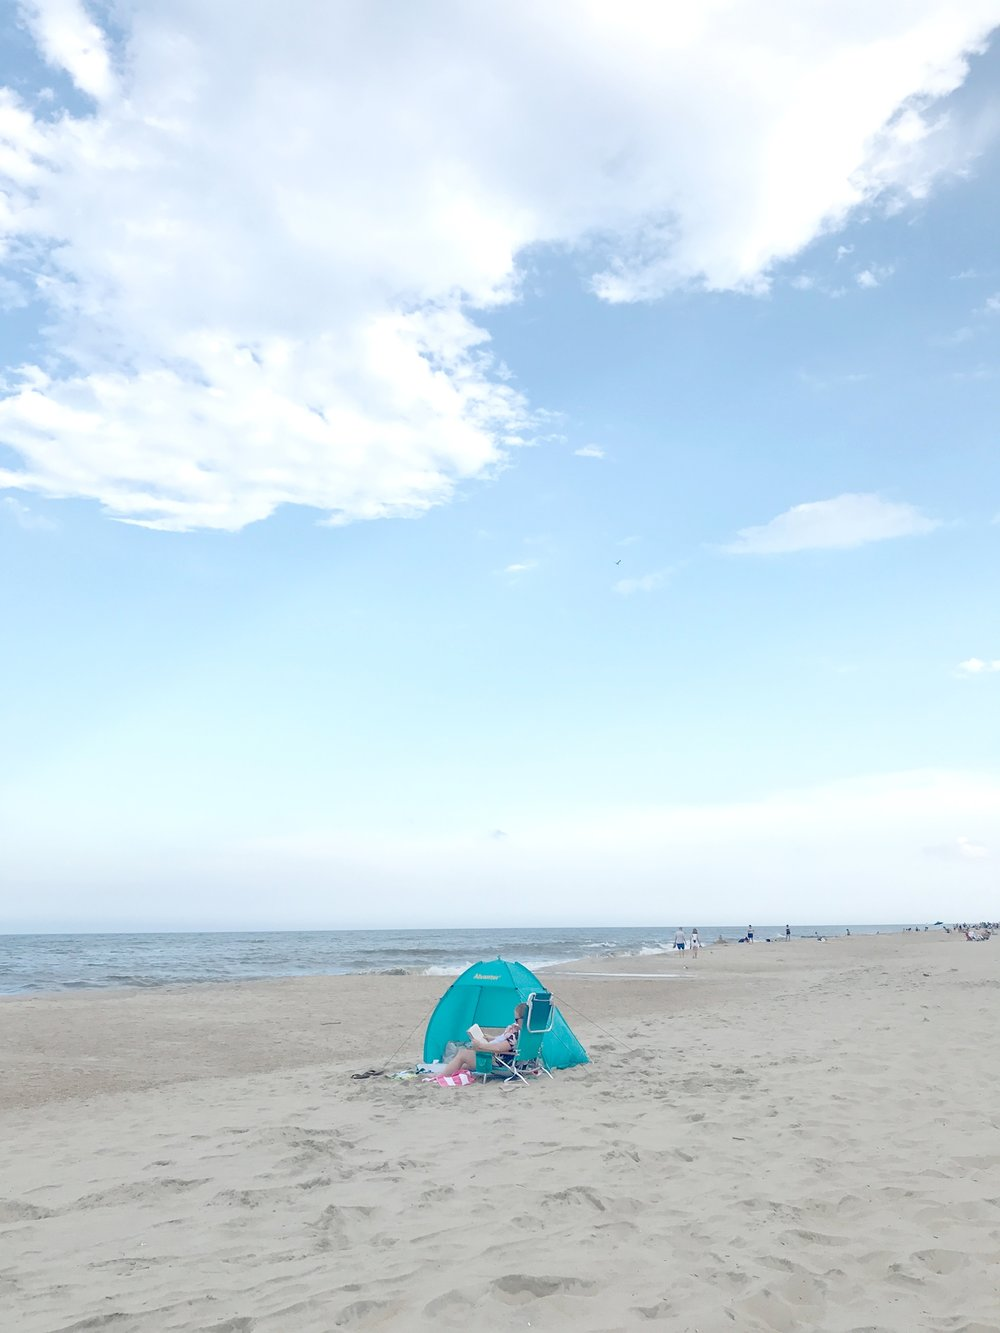 IMG_1020_rehoboth-beach-family-vacation-beach-baby-anna-grace-photography-photo.jpg